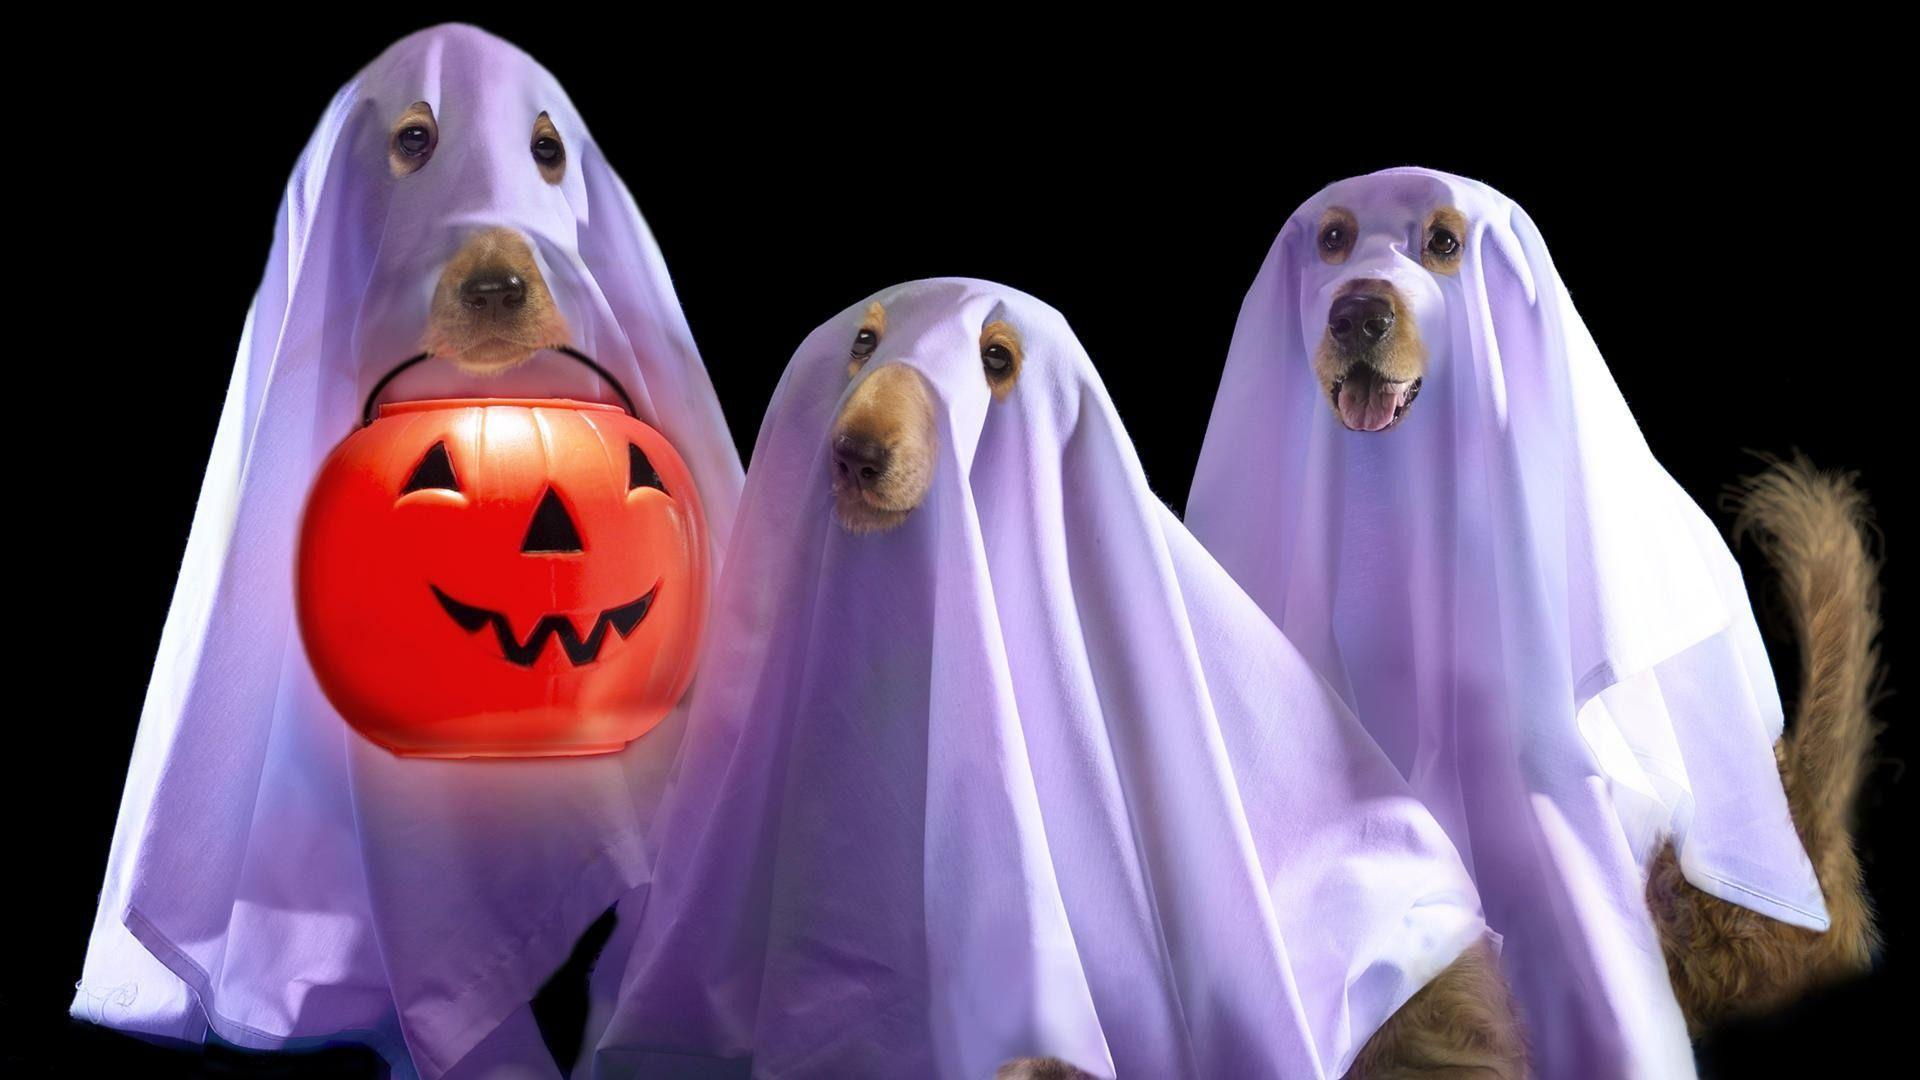 Halloween Screensavers and Wallpaper (58+ images) |Free Funny Screensavers Fall Halloween